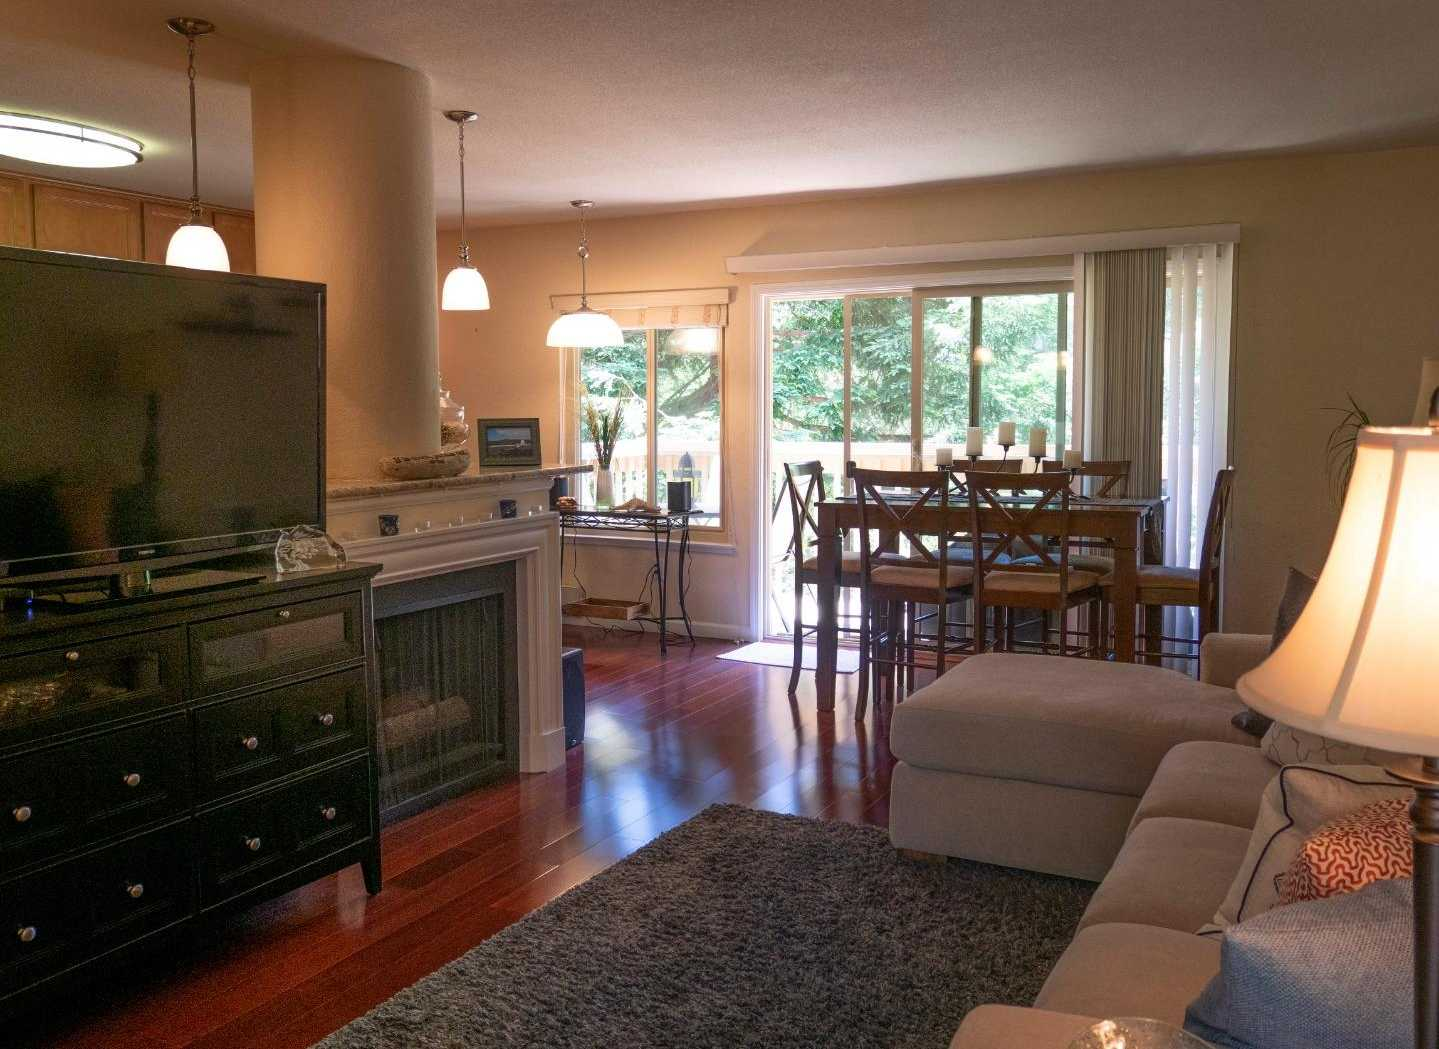 $400,000 - 1Br/1Ba -  for Sale in Monterey